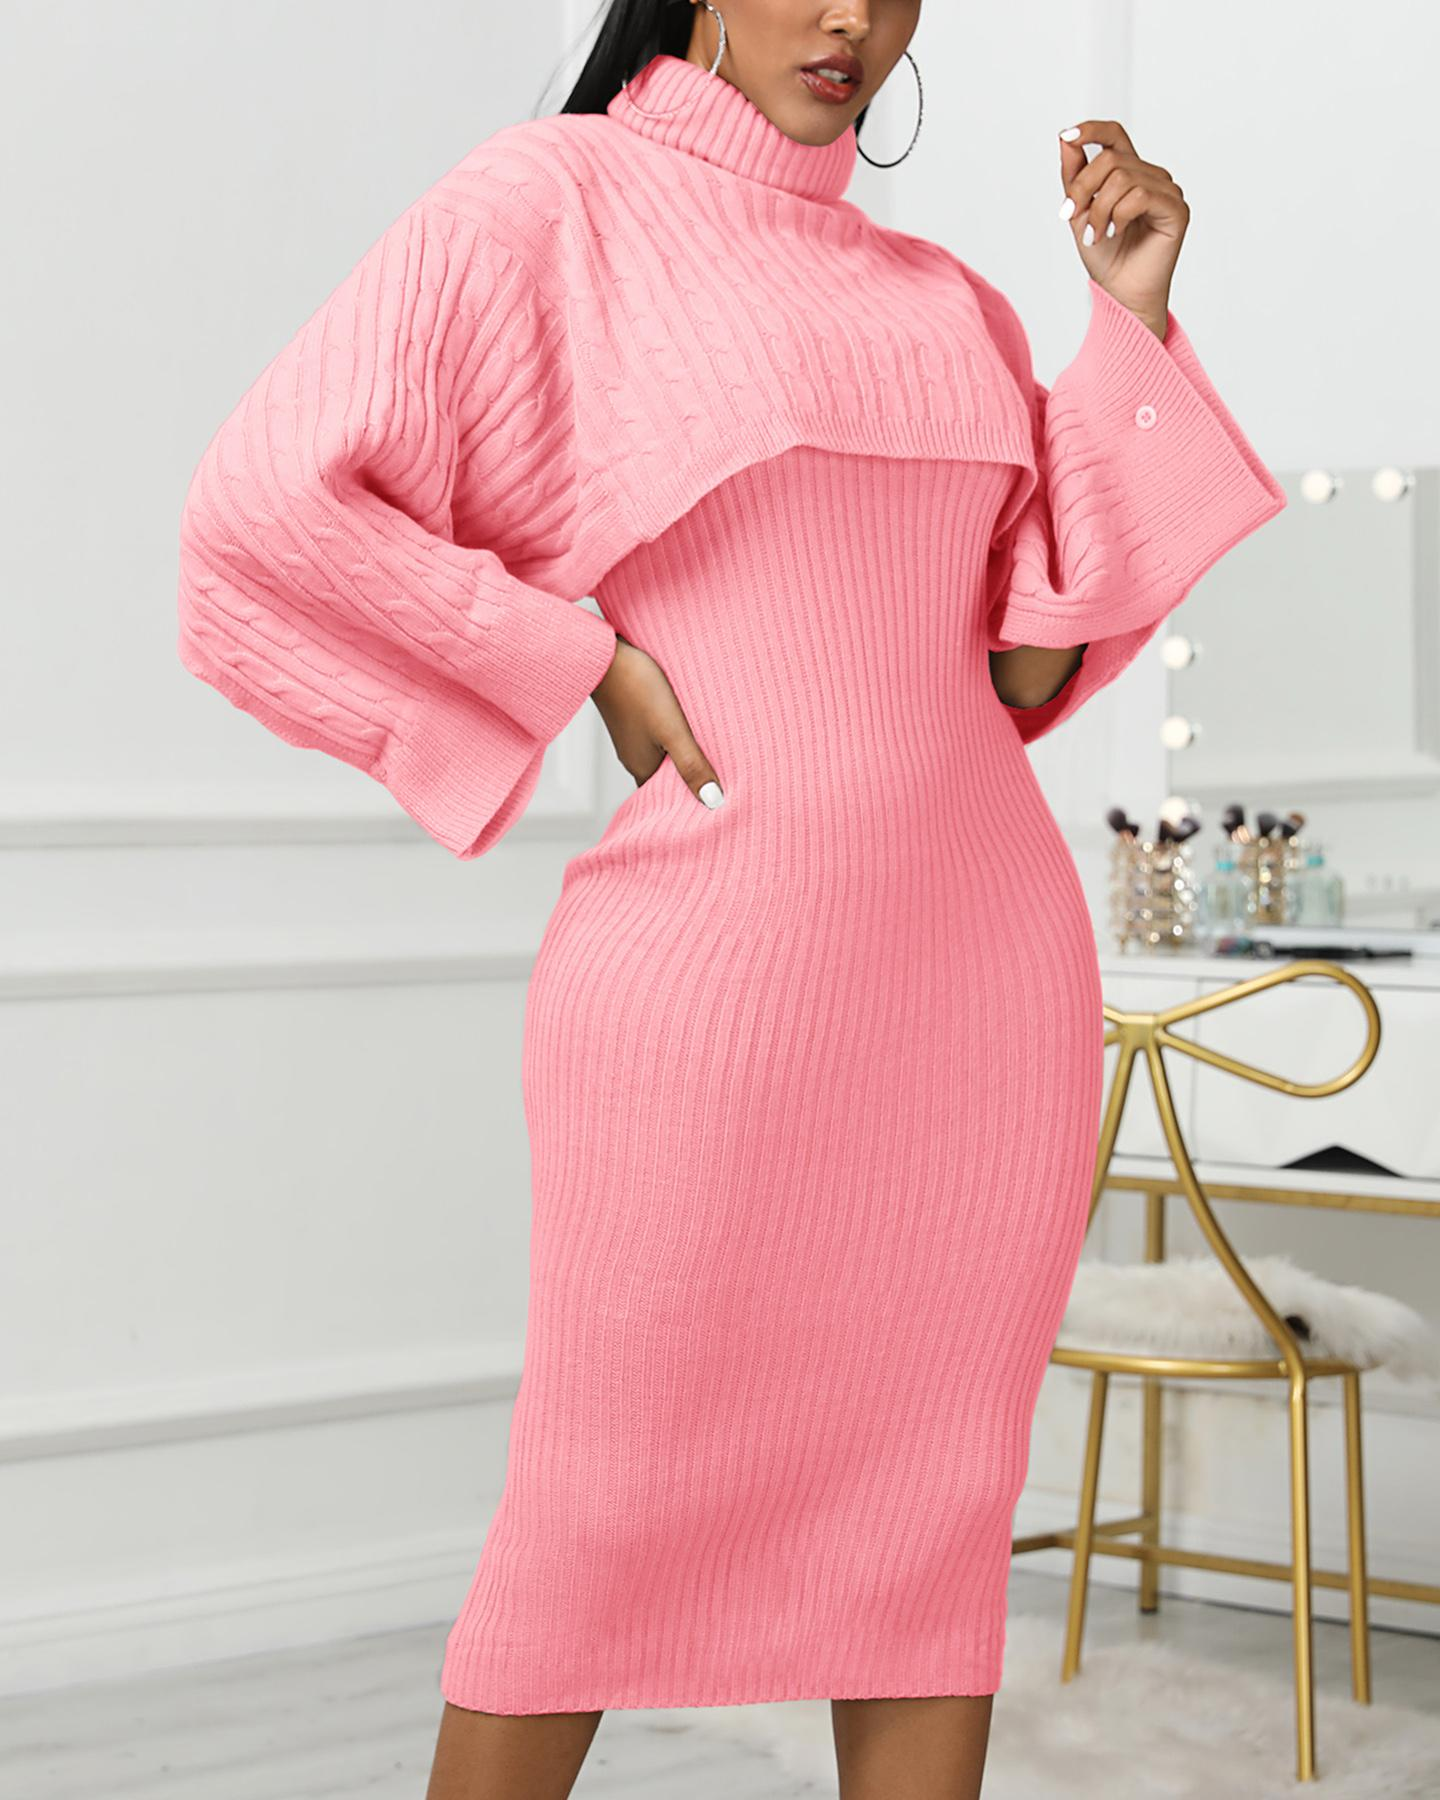 Solid High Neck Ribbed Sweater & Thin Strap Dress Sets thumbnail